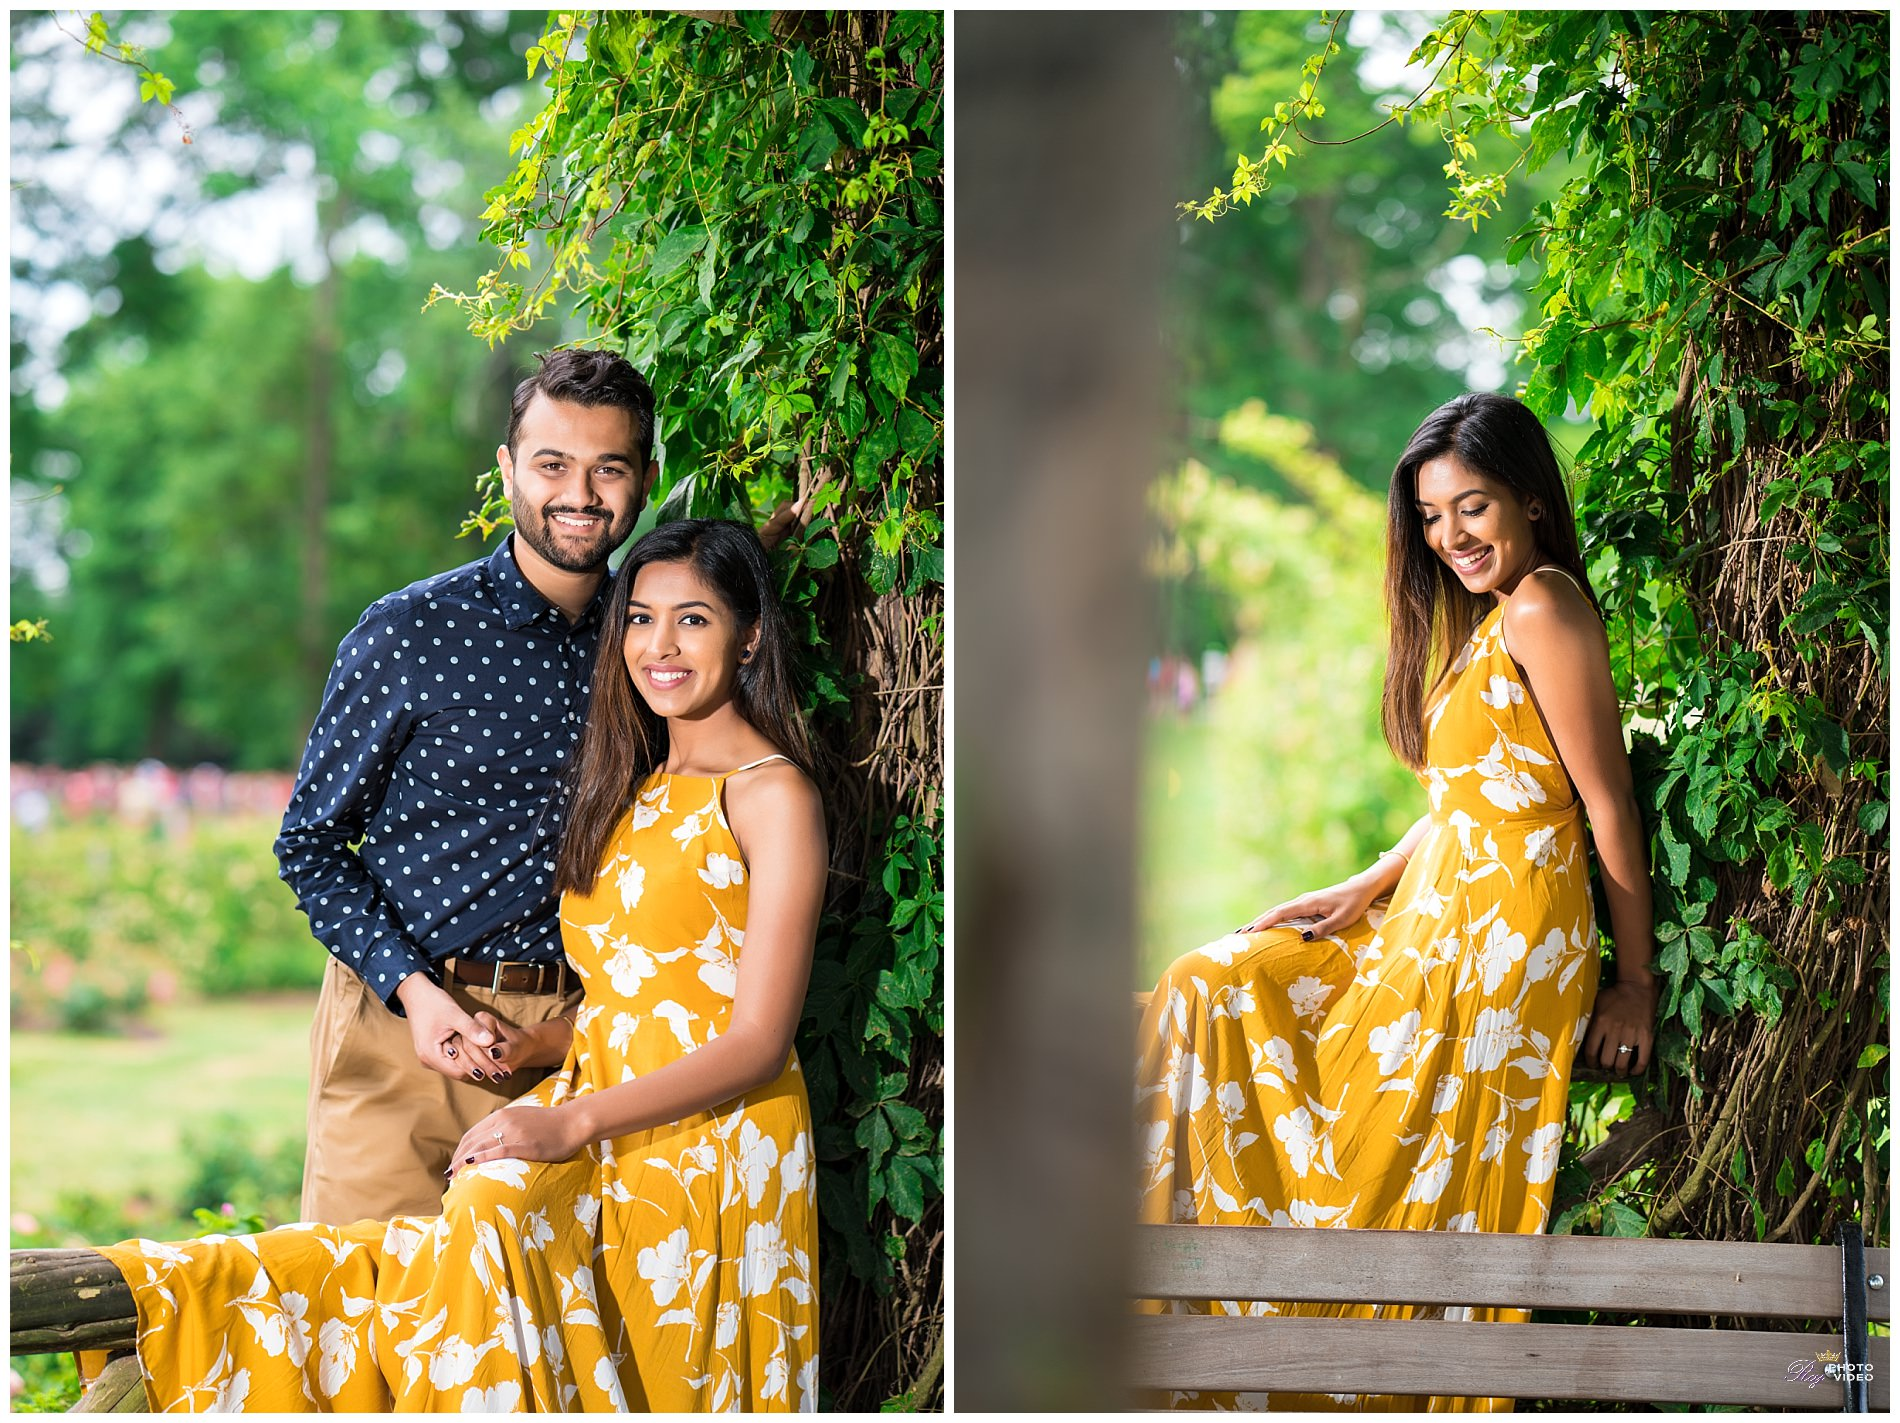 Elizabeth-Park-Rose-Garden-Hartford-CT-Engagement-Shoot-Pratiti-Suraj-14.jpg